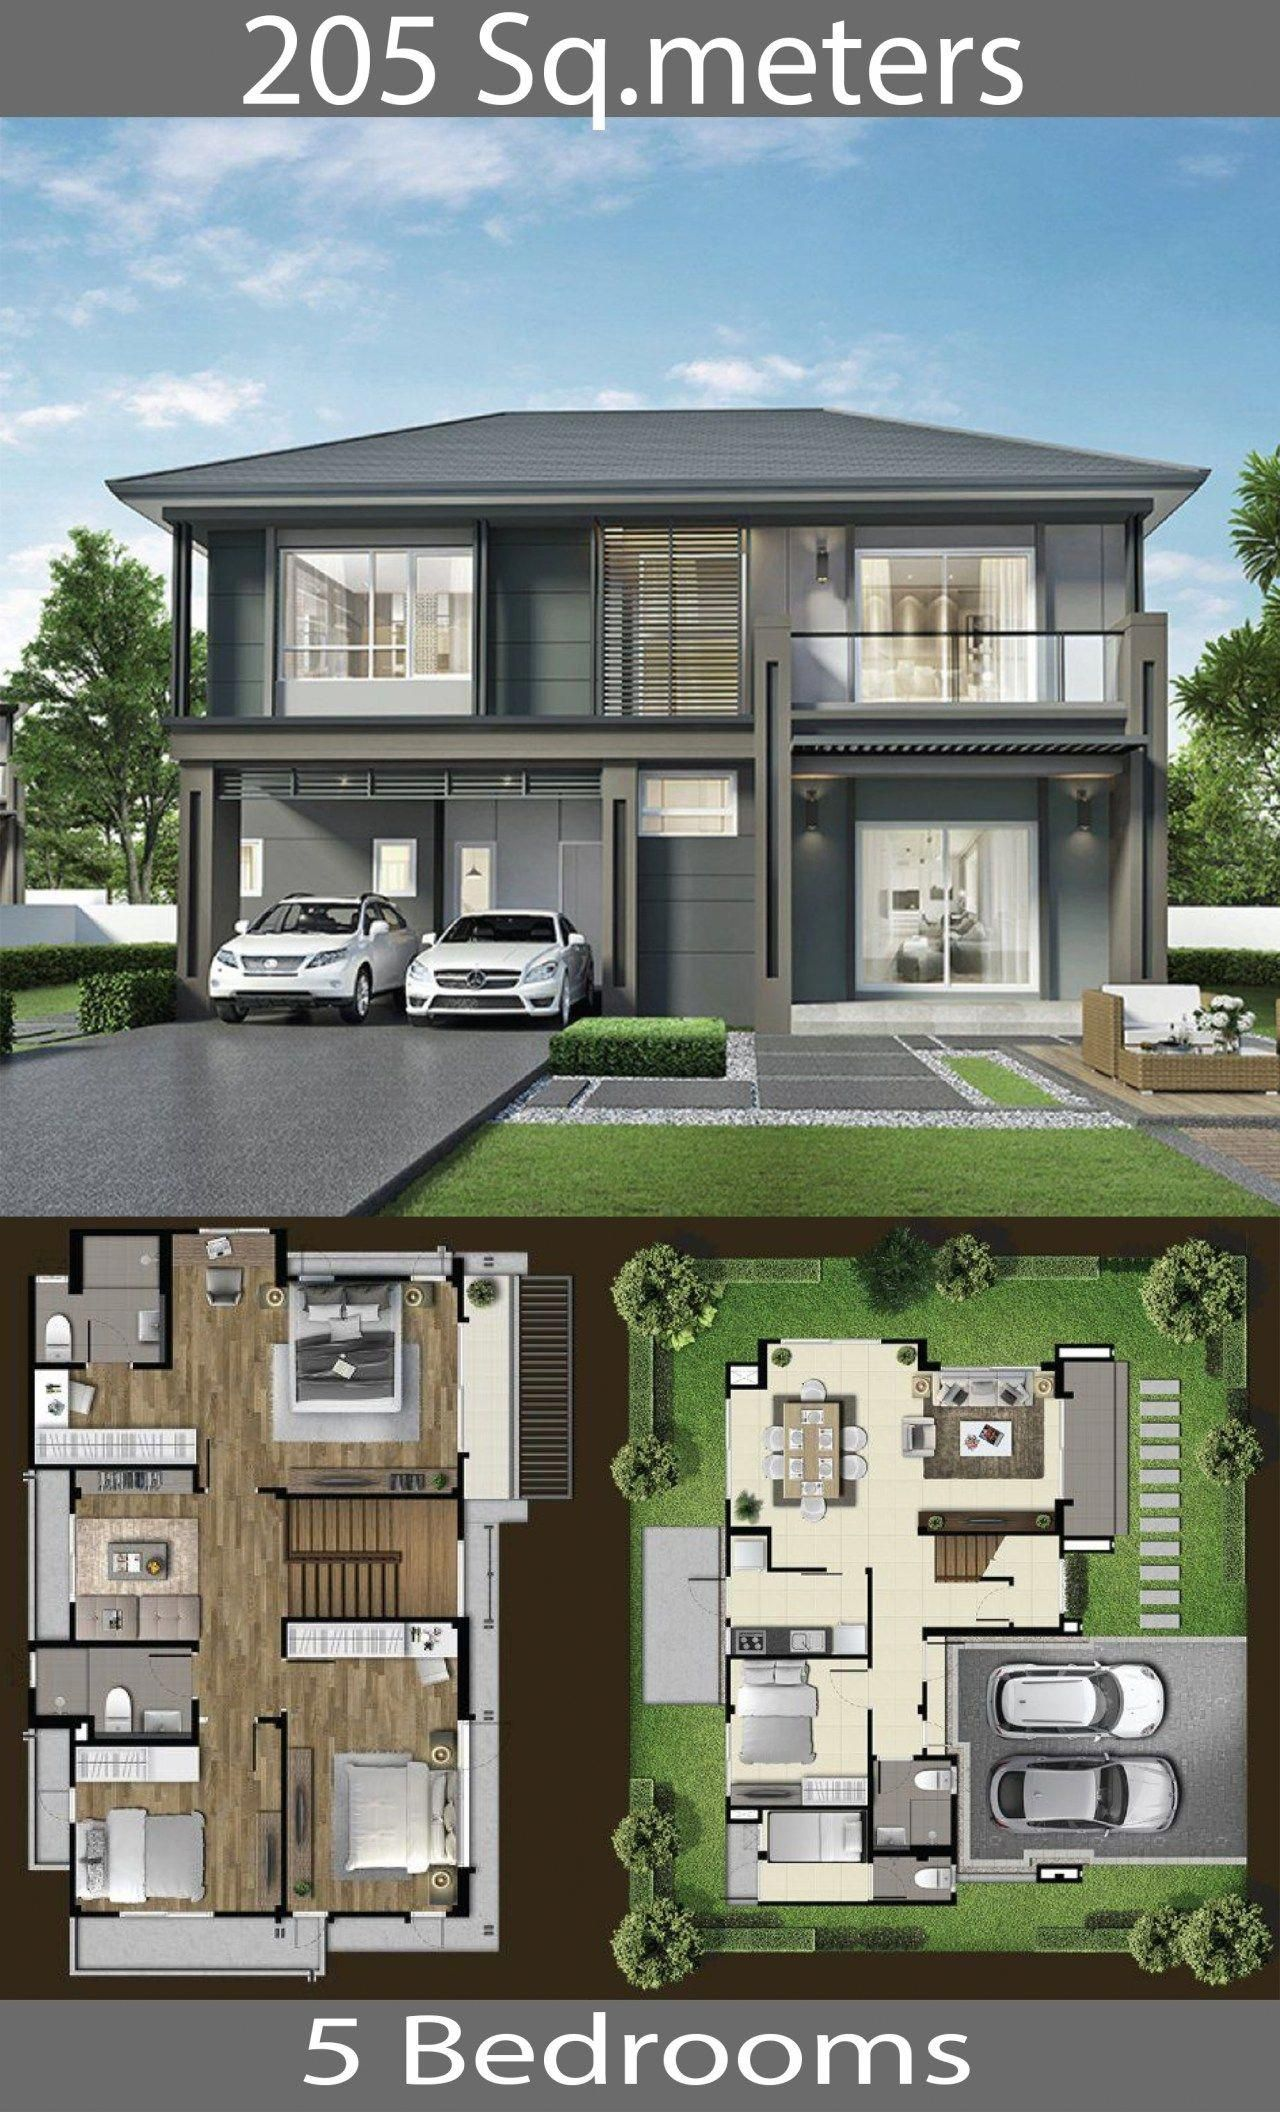 205 Sq M House Ideas With 5 Bedrooms Home Ideas Besthomeinteriors Double Storey House Plans Town House Floor Plan Double Storey House